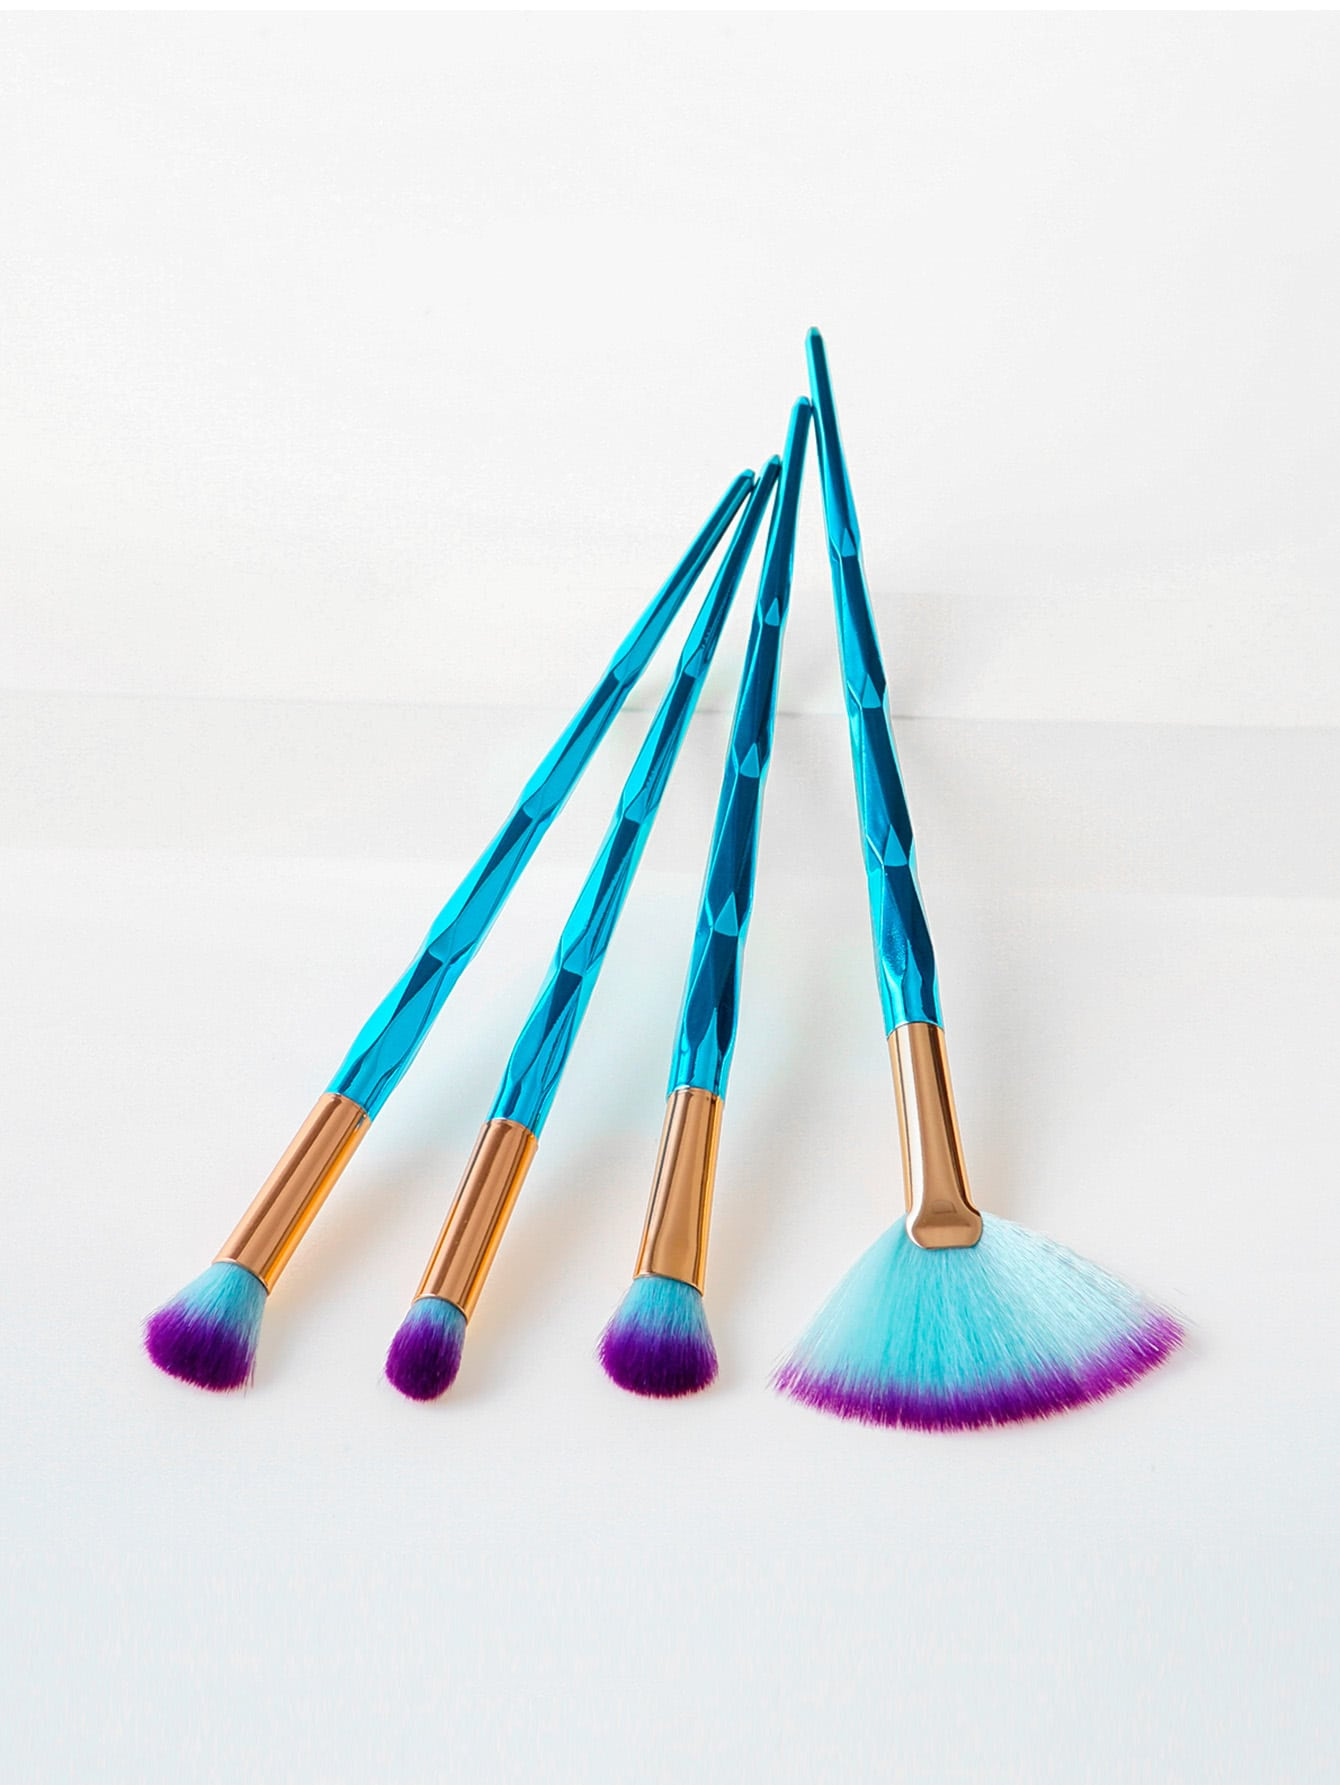 Diamond Handle Makeup Brush 4pcs